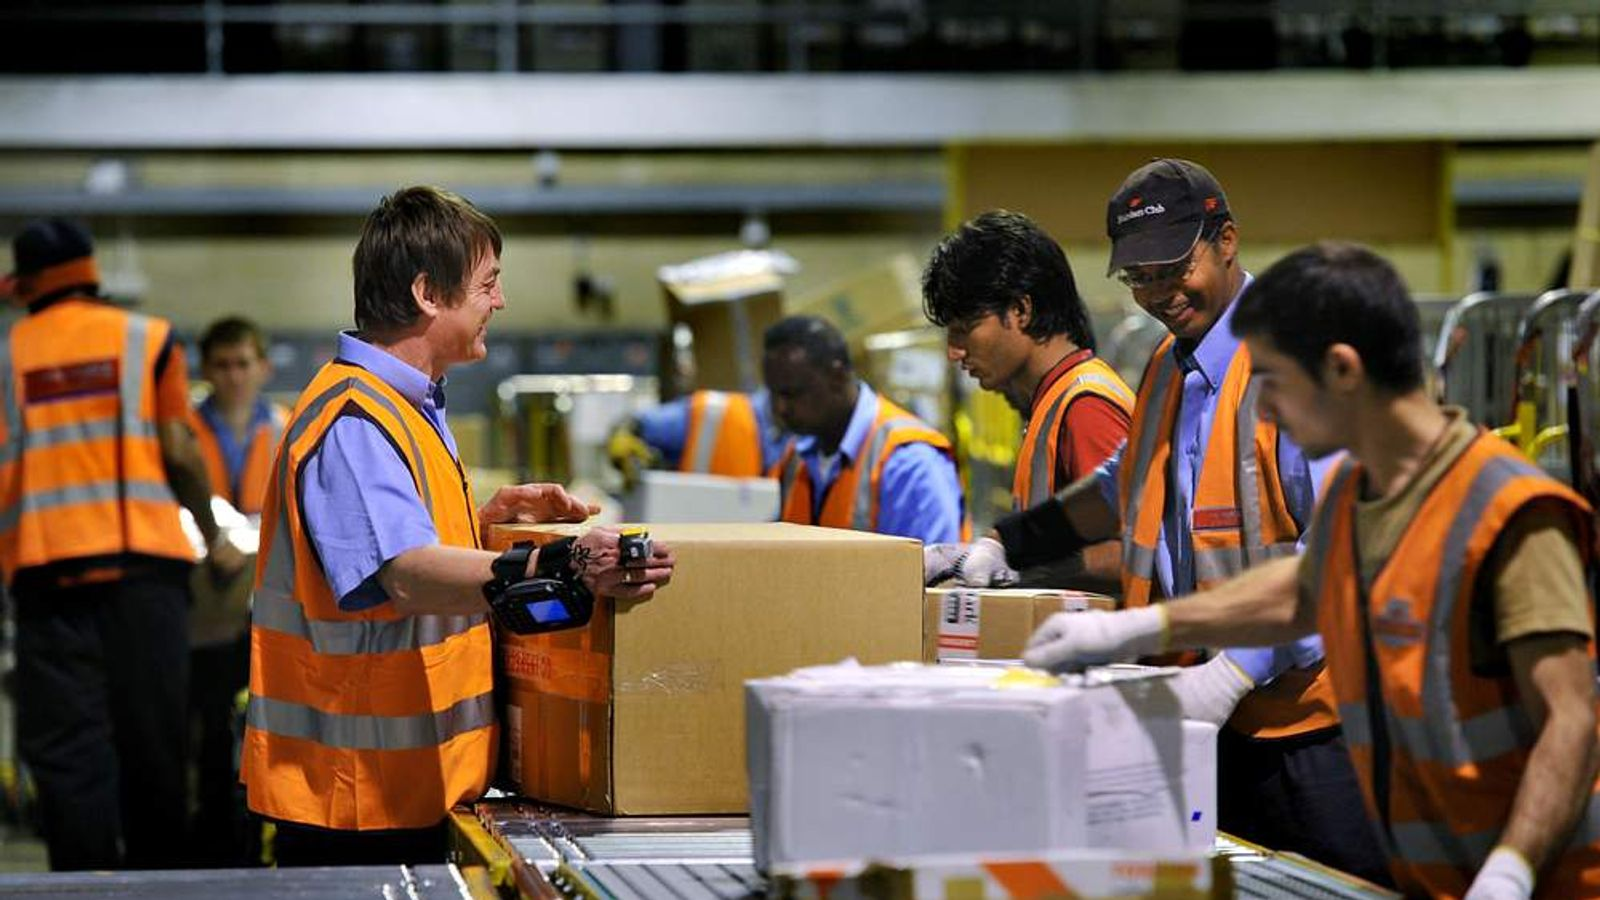 Royal Mail staff sort parcels at central distribution centre